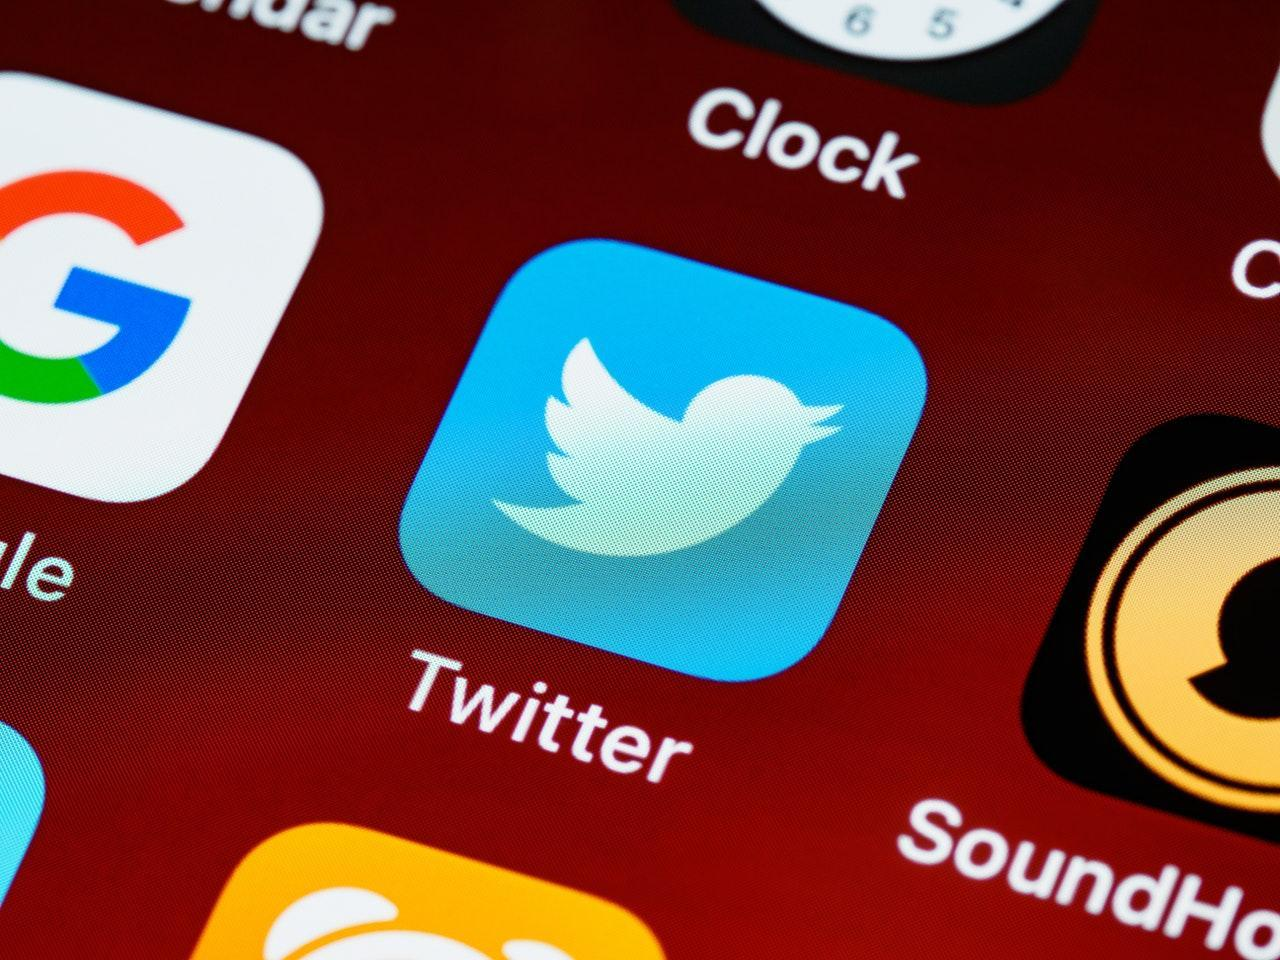 Close up of a Twitter app icon on a phone screen